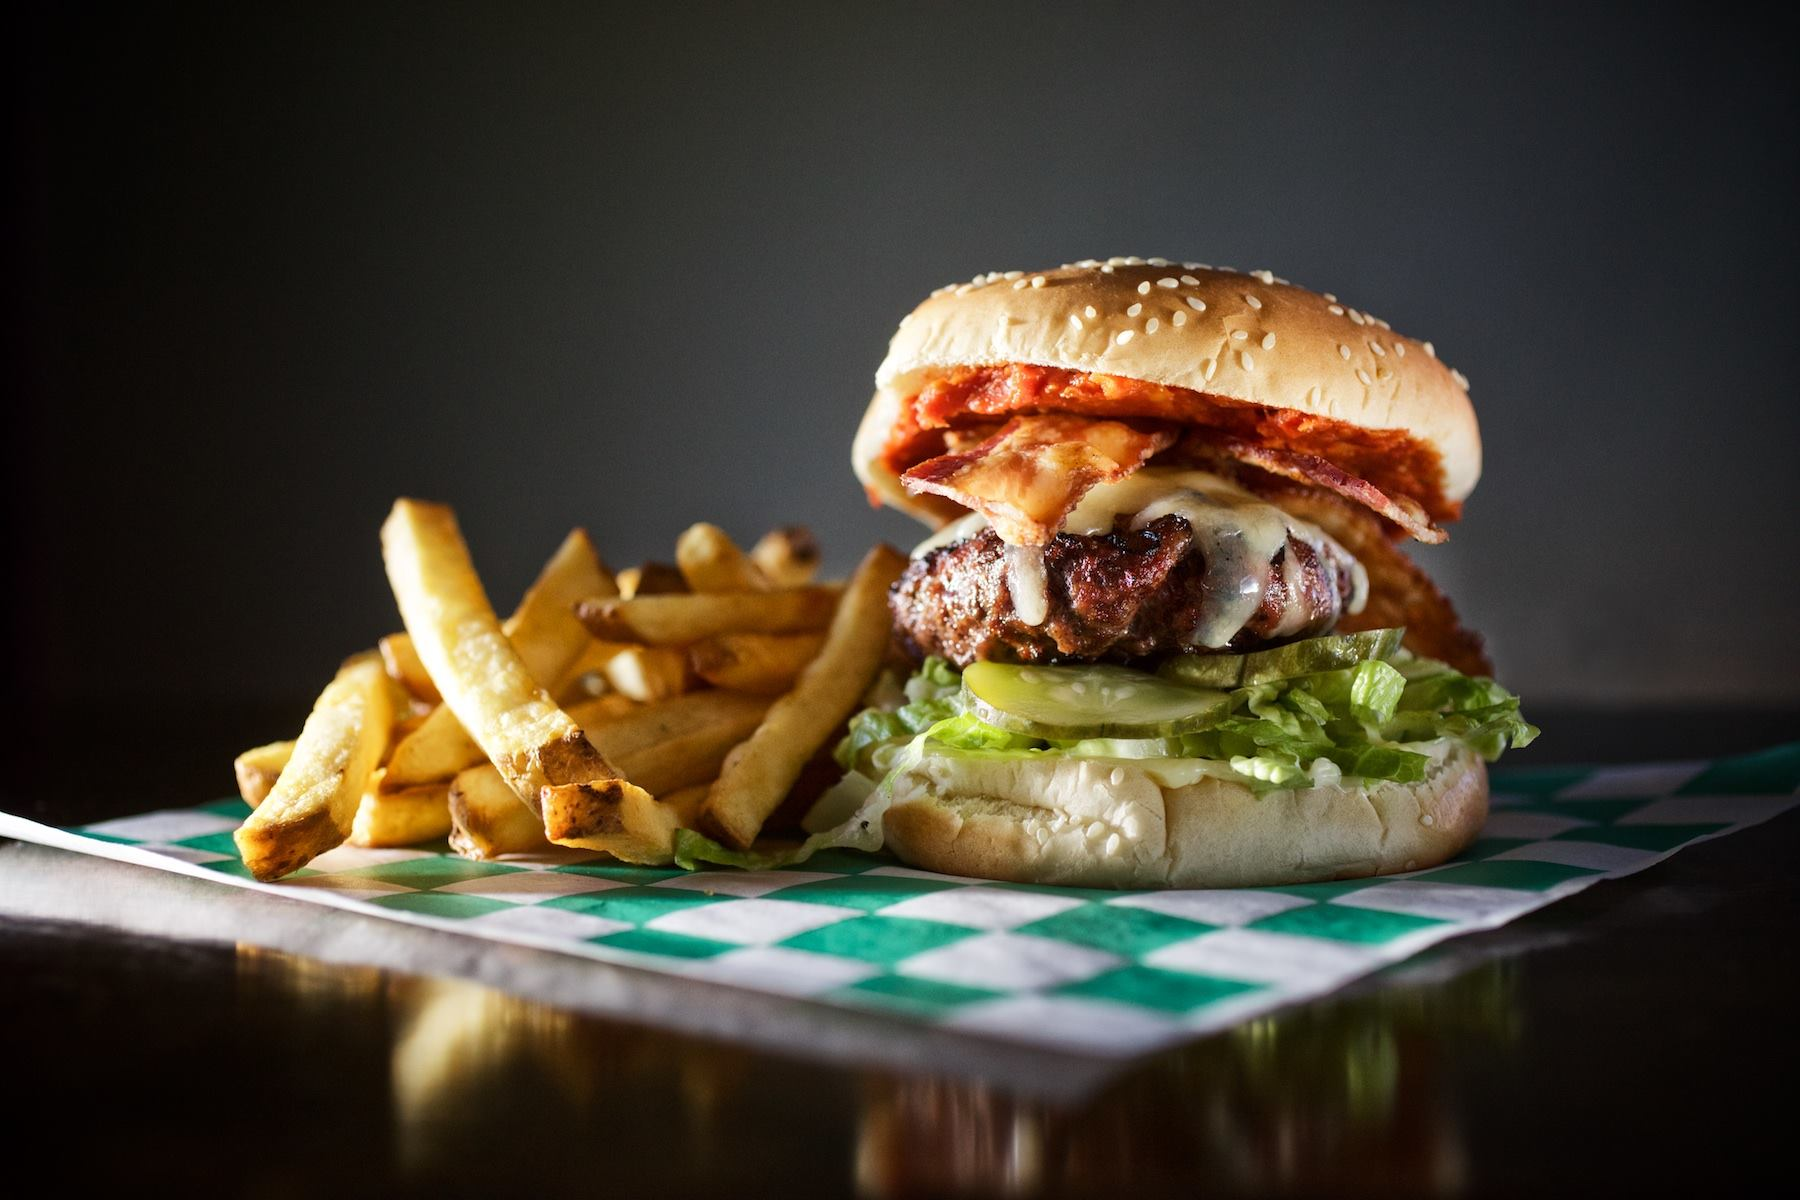 A burger from Royal Jelly